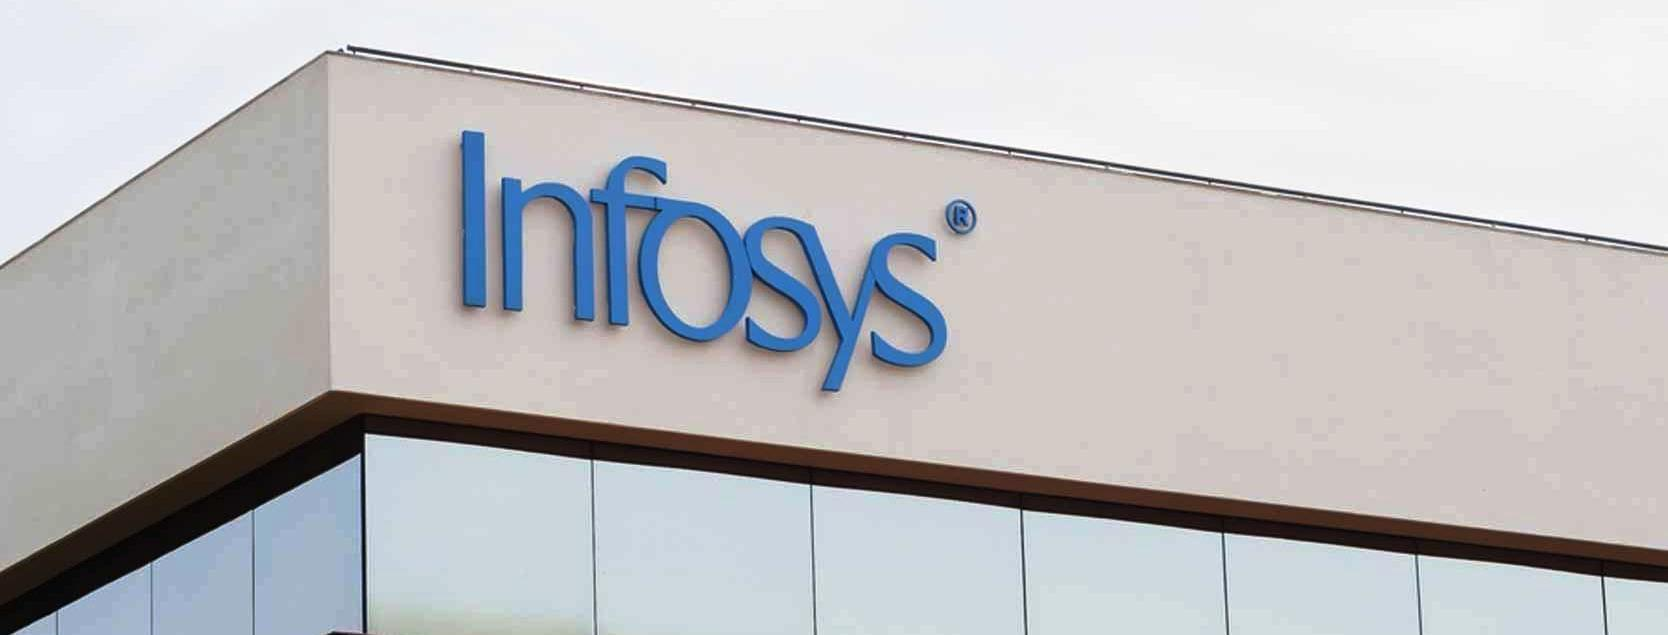 Infosys to give incentives to staff members with digital skills